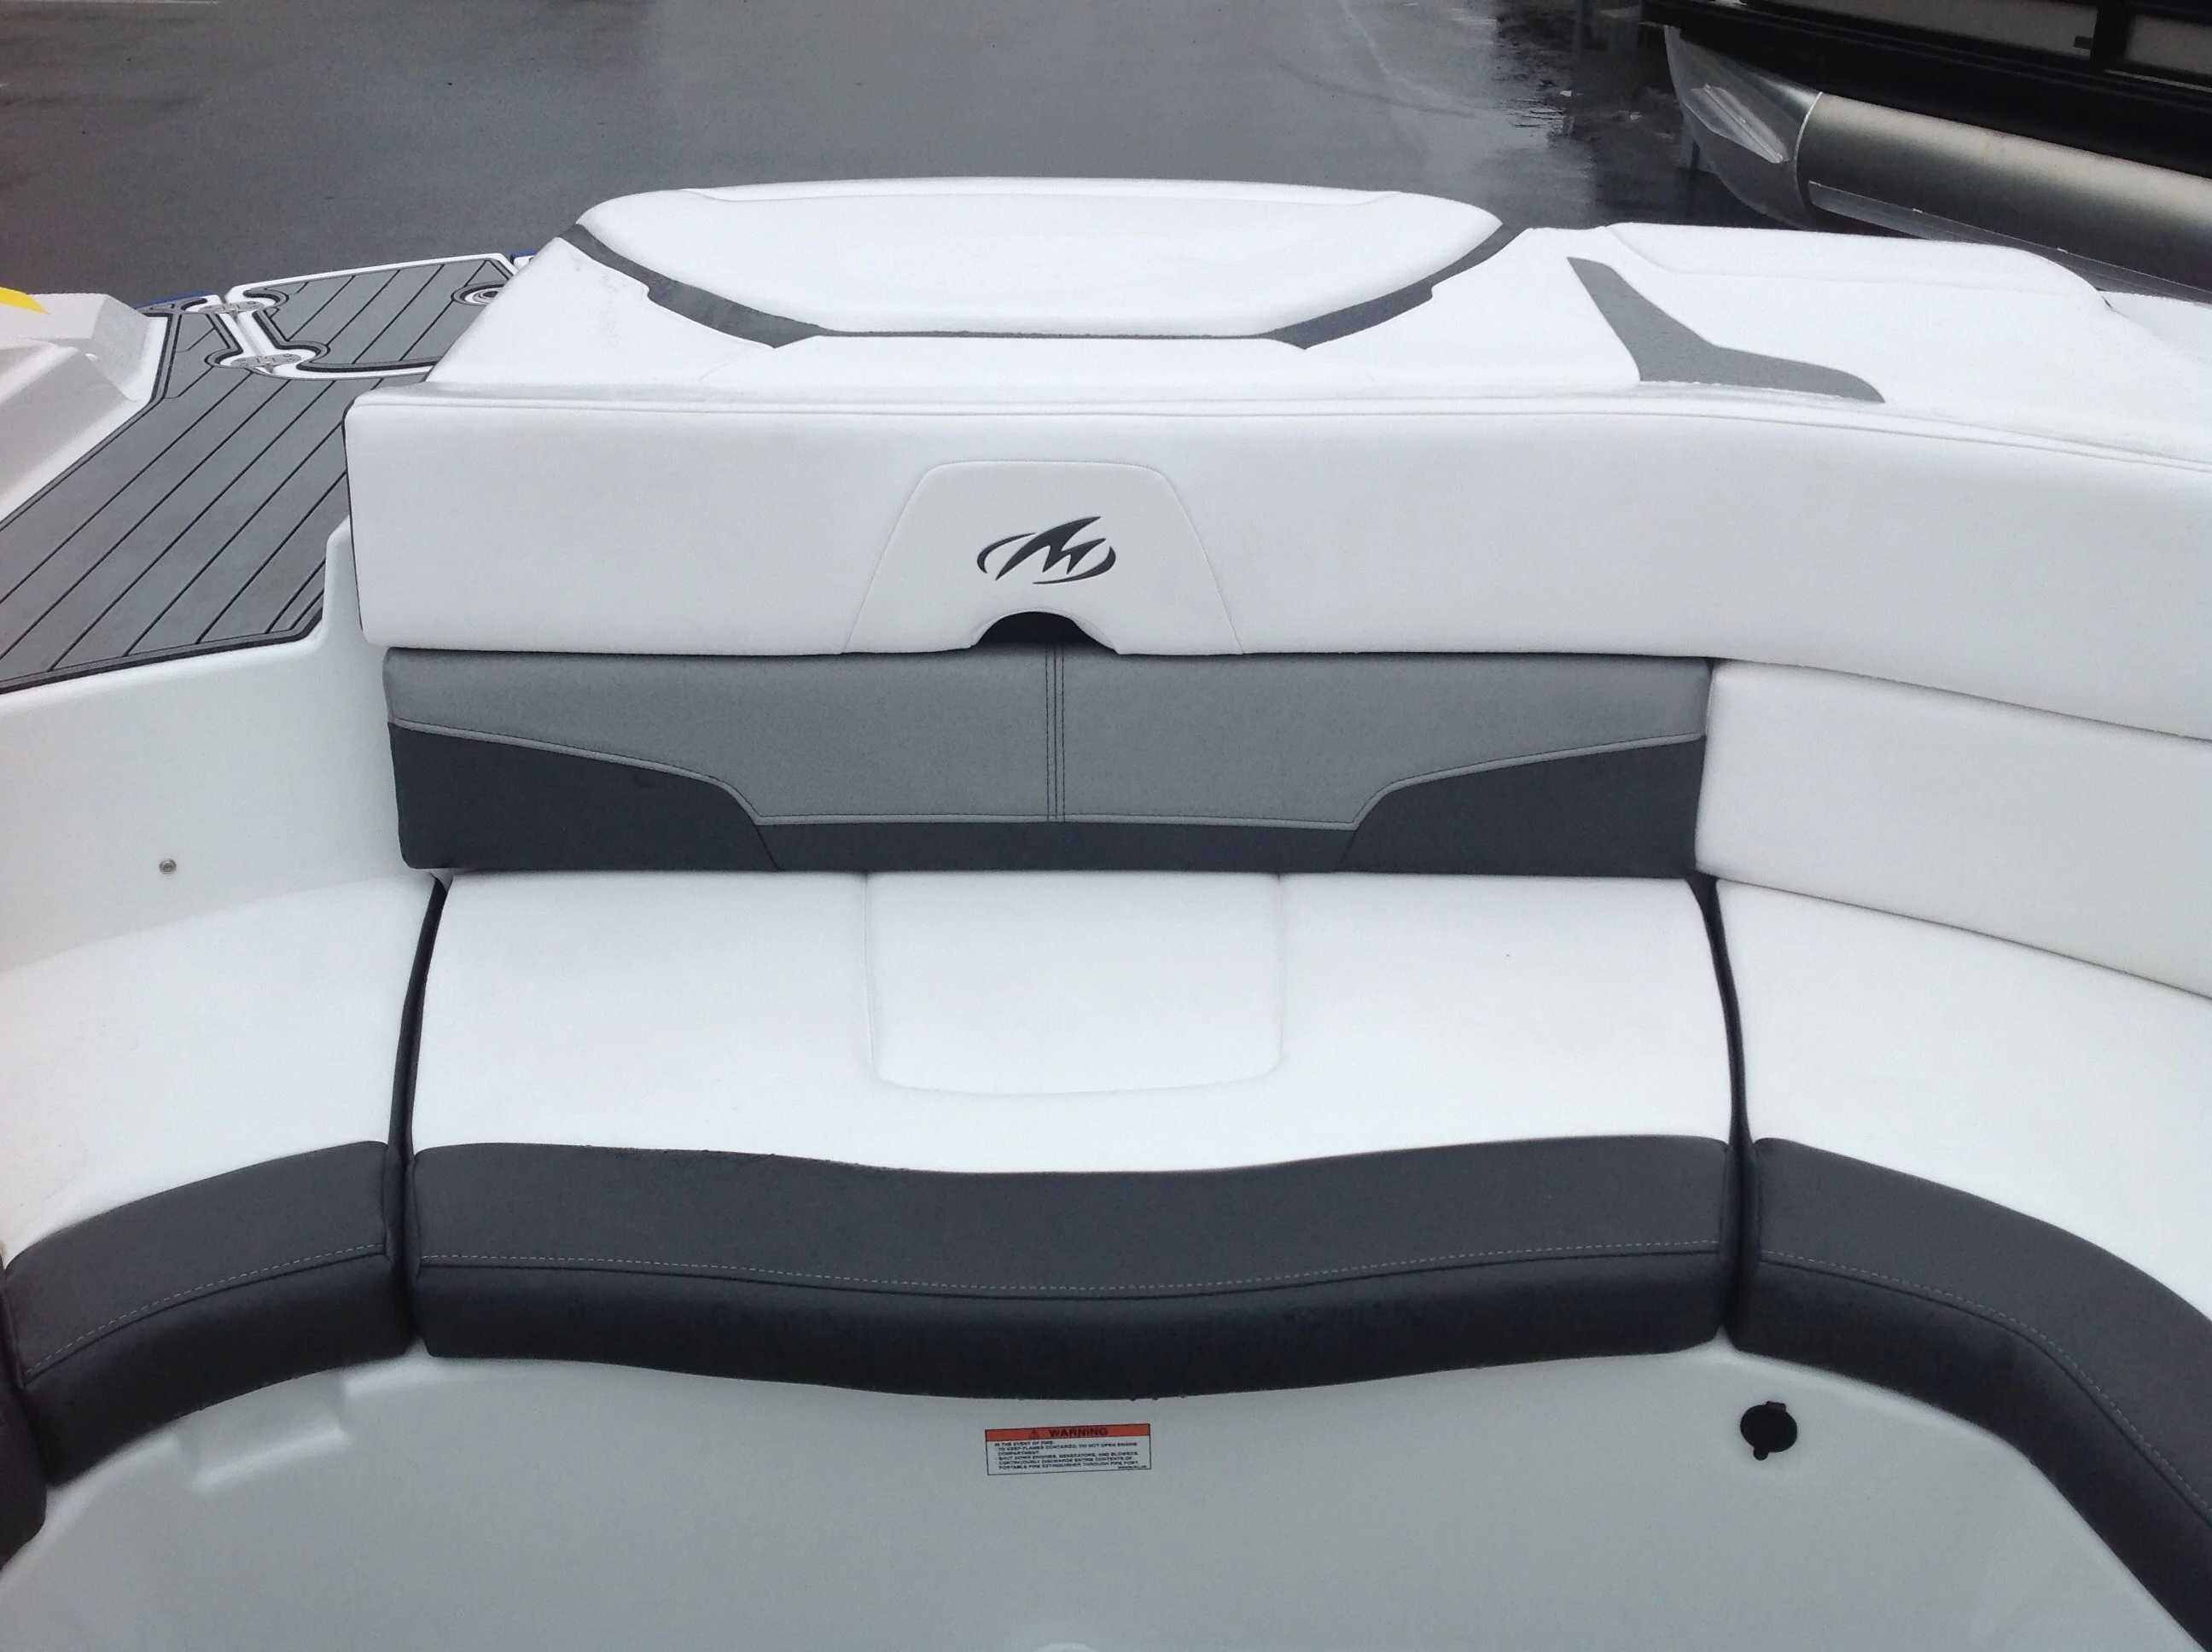 2022 Monterey boat for sale, model of the boat is 224FS & Image # 8 of 12